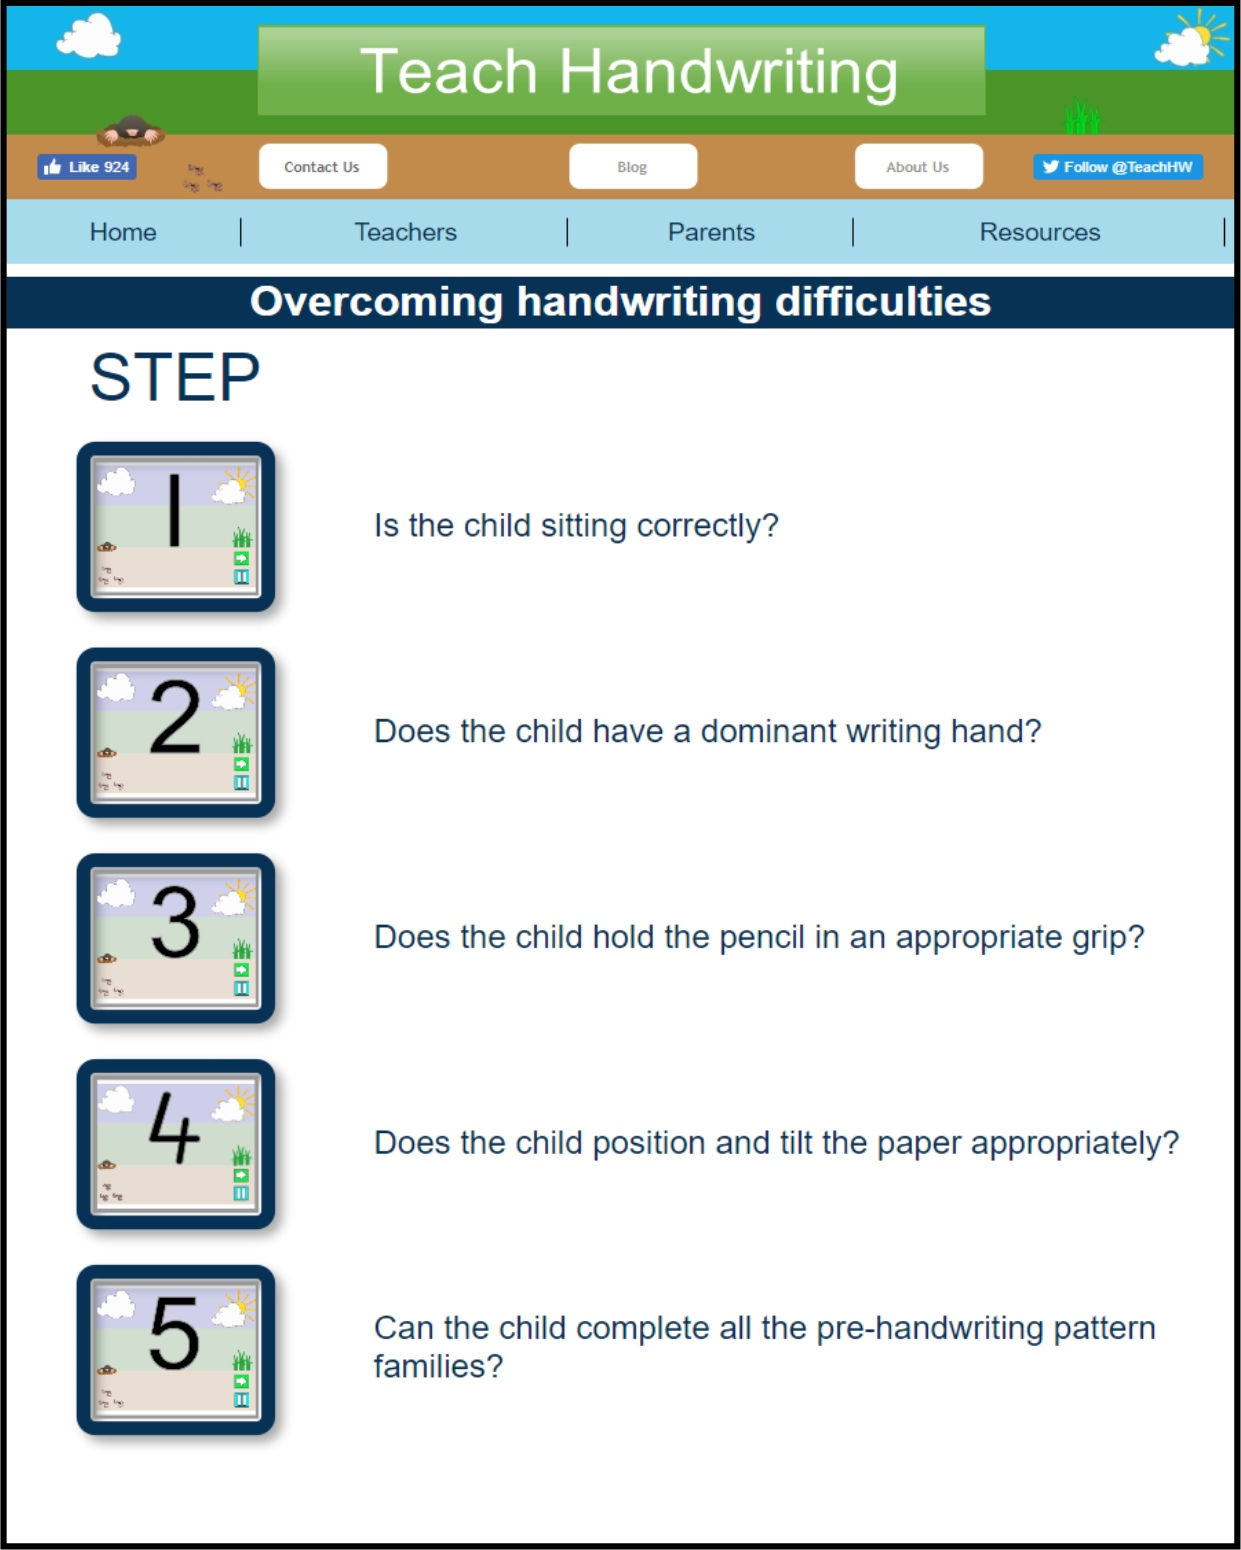 Step by Step overcoming difficulties 1